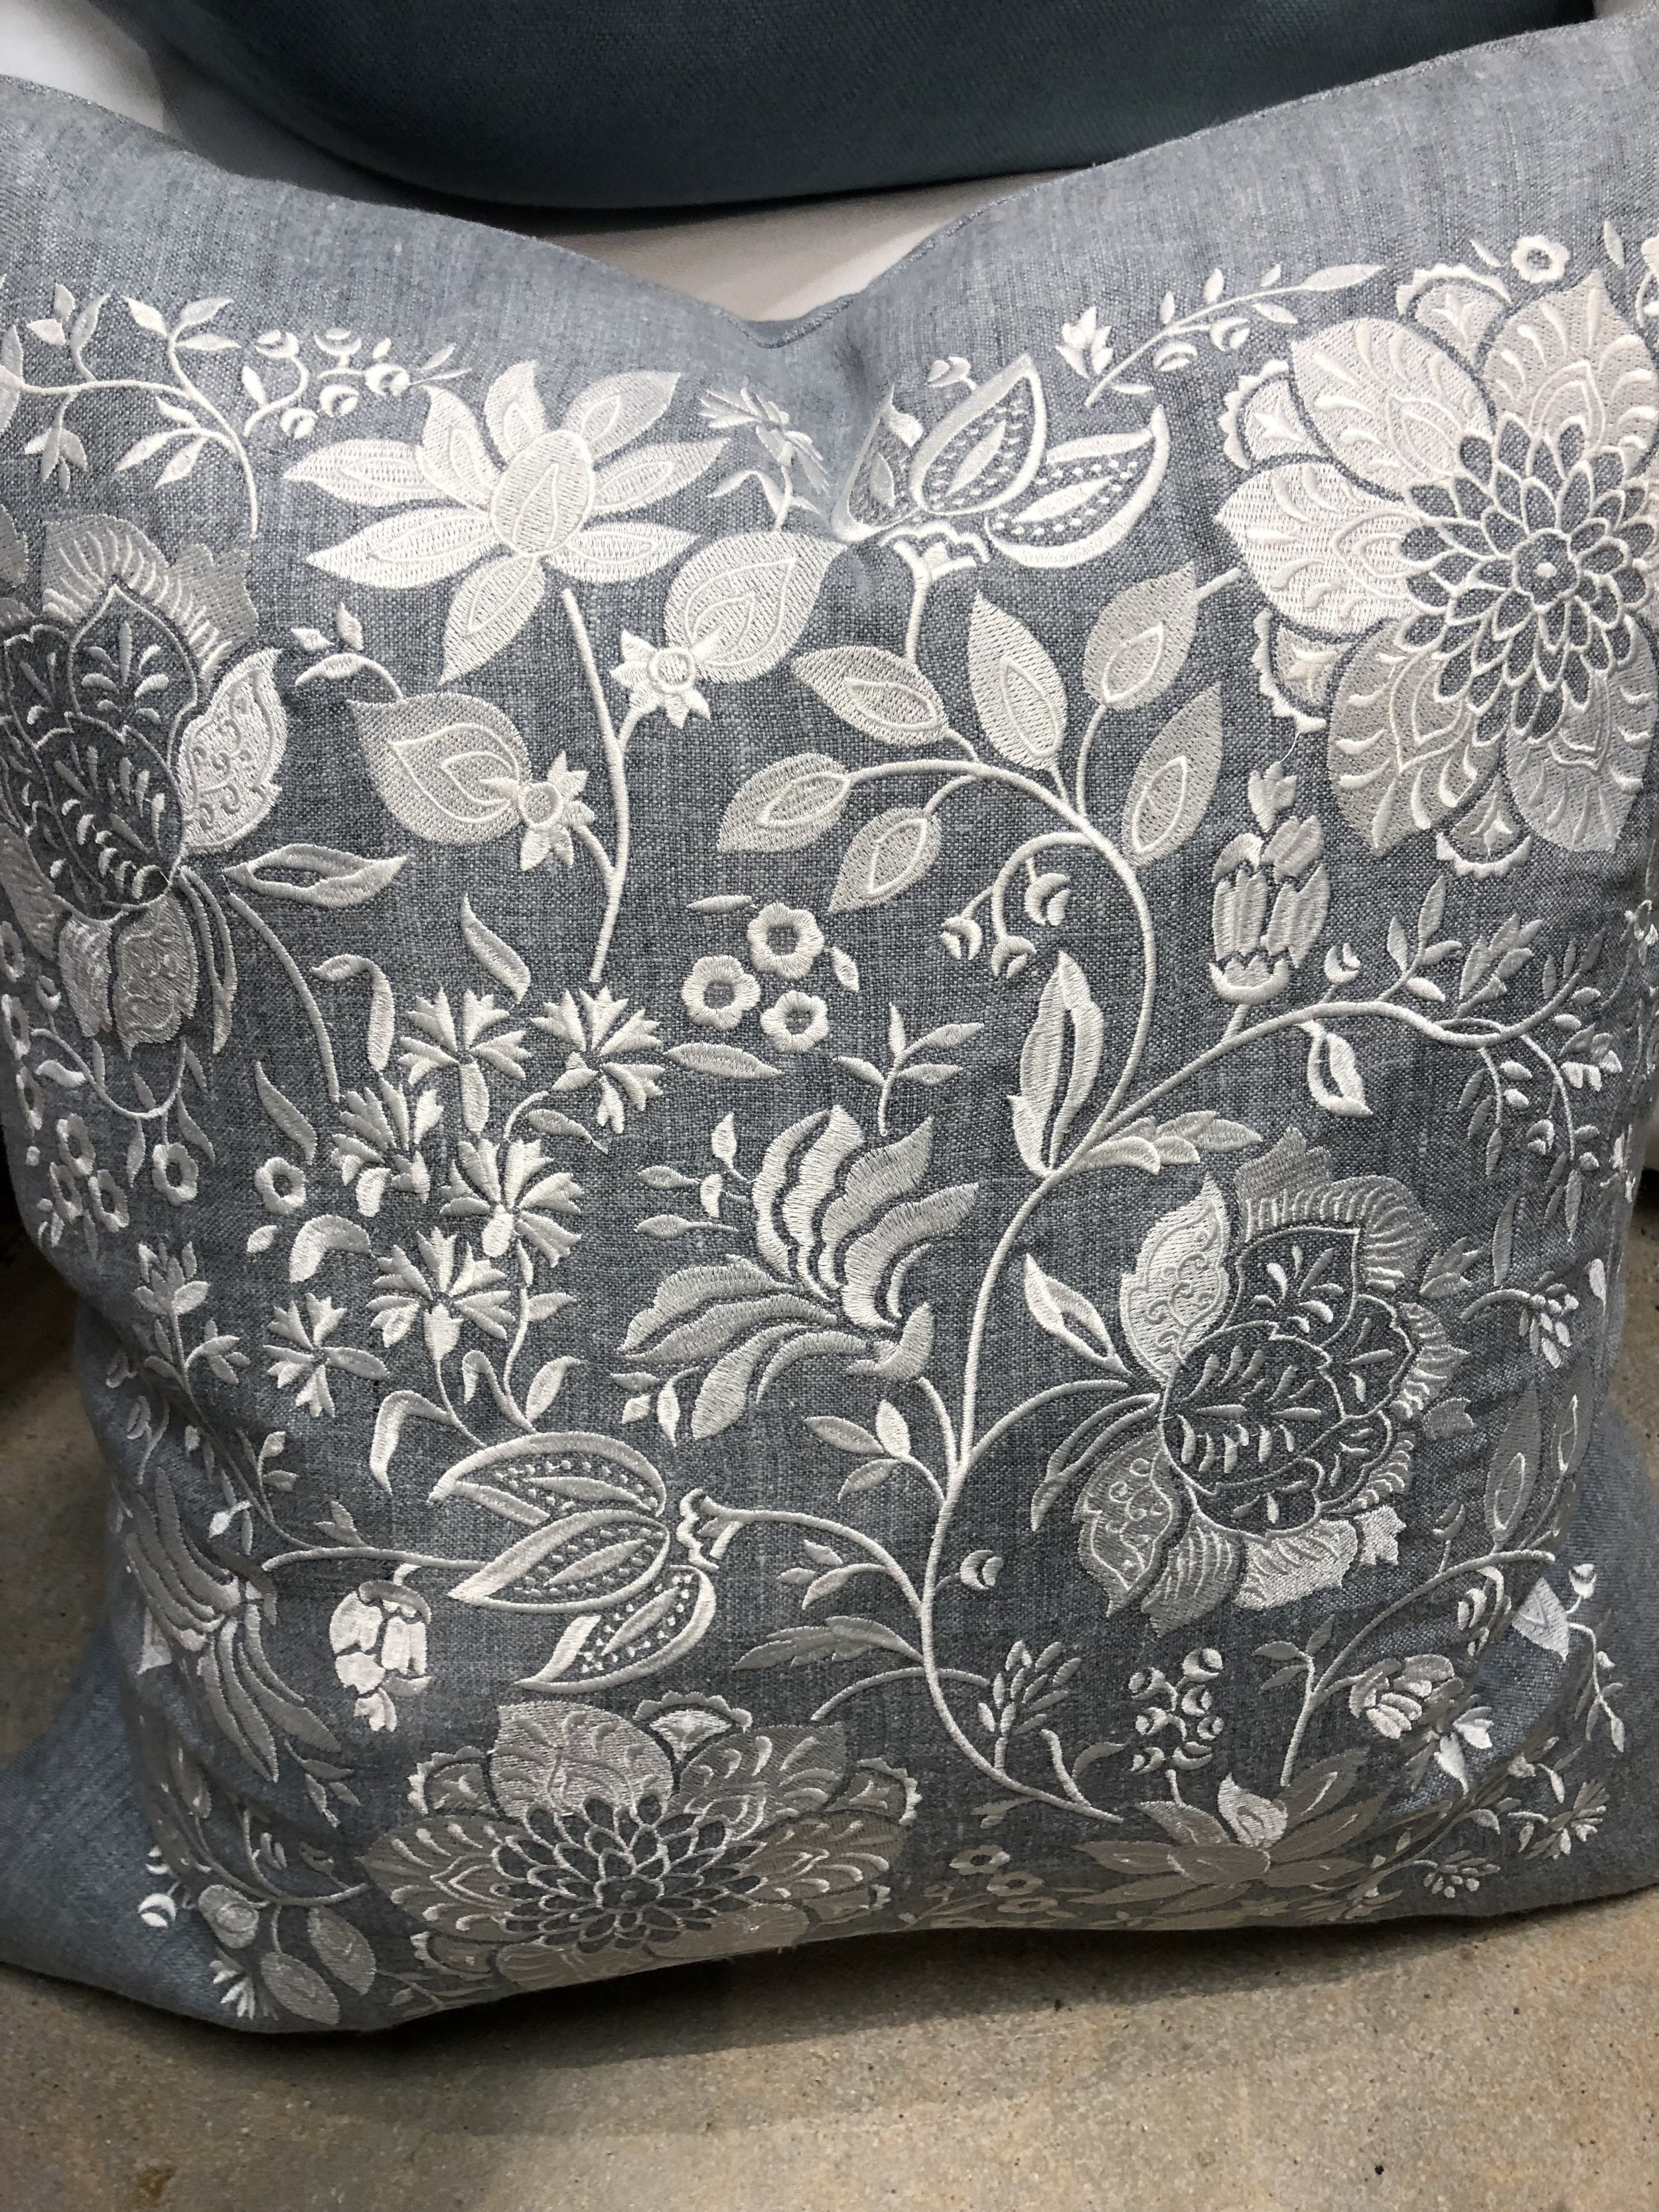 Jacobean embroidered in white on Delave blue linen. This is part of our new collection called French Finds.